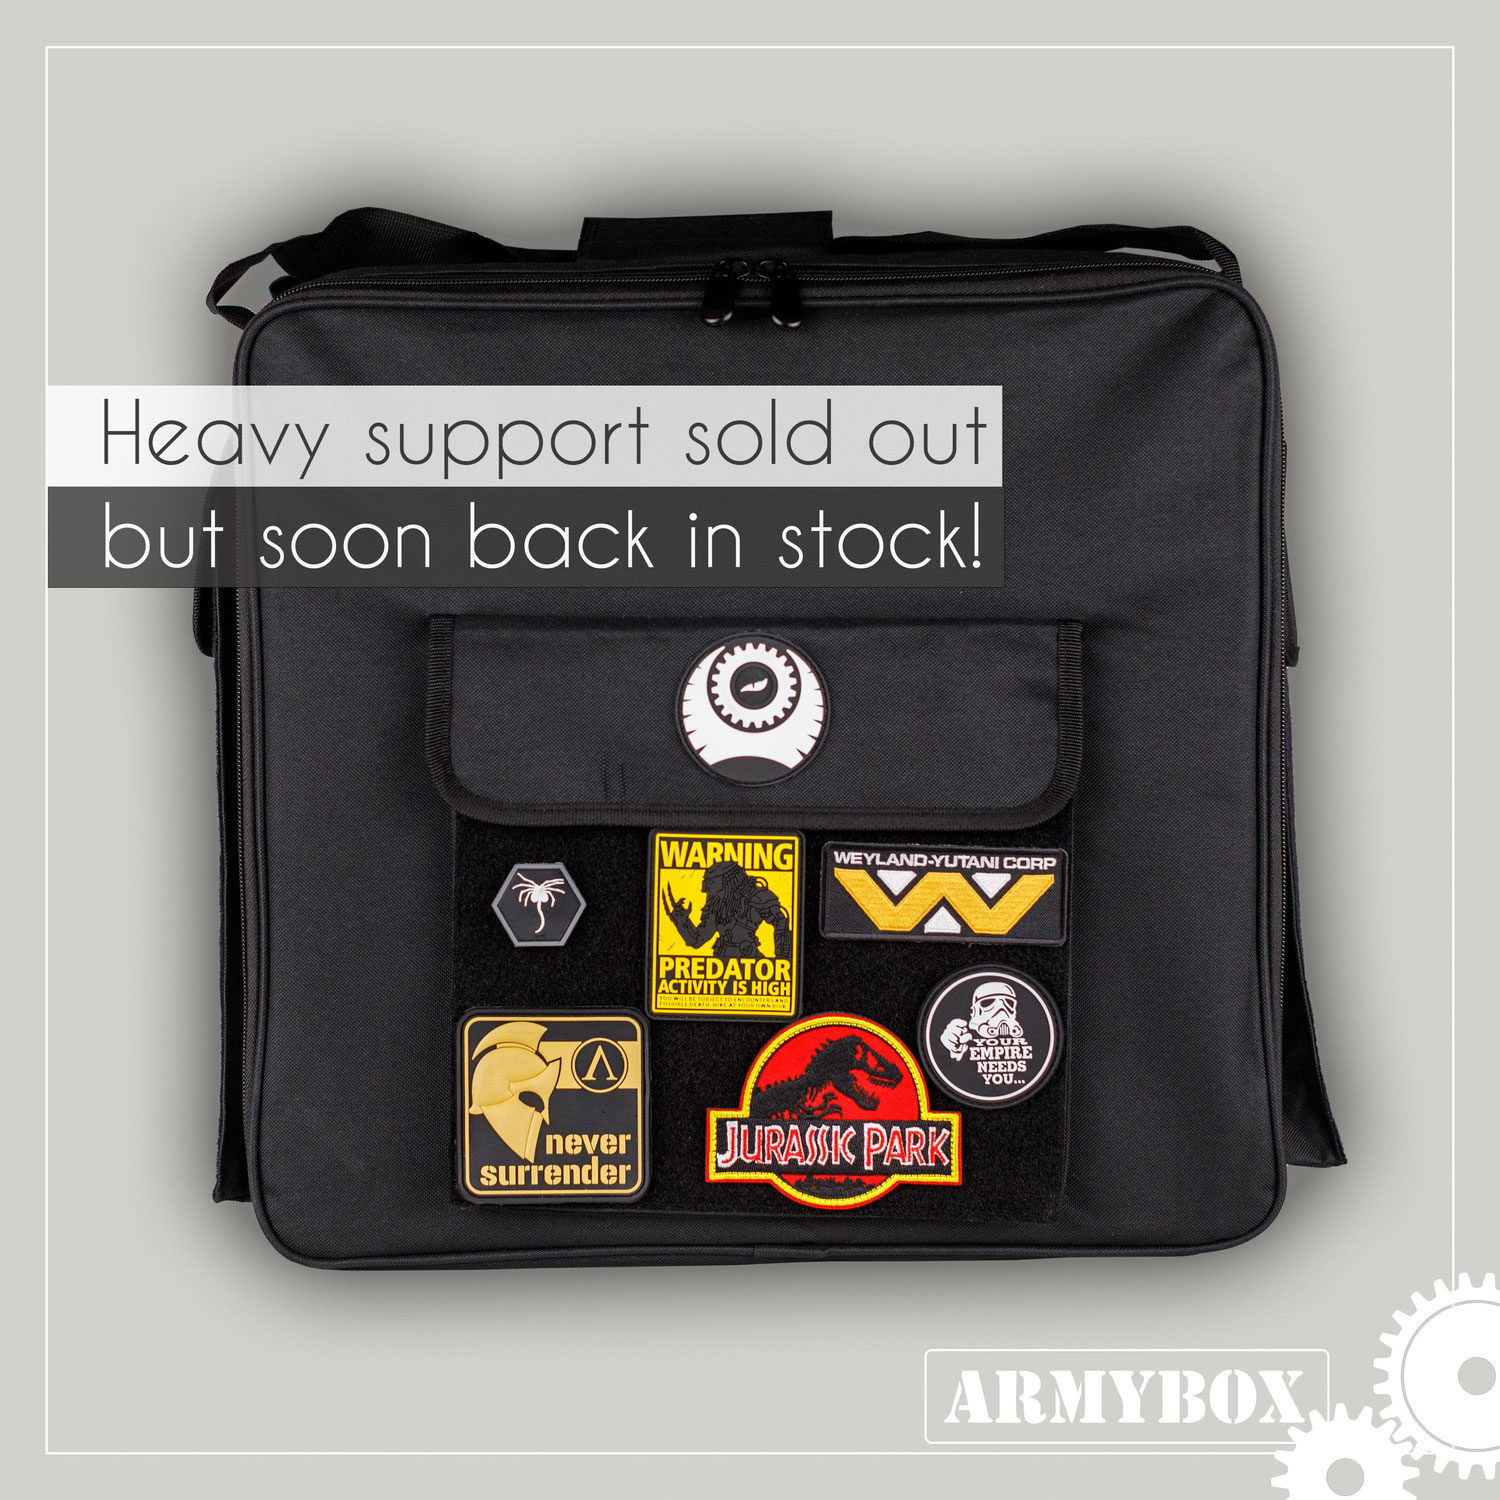 Heavy Support sold out - soon back in stock